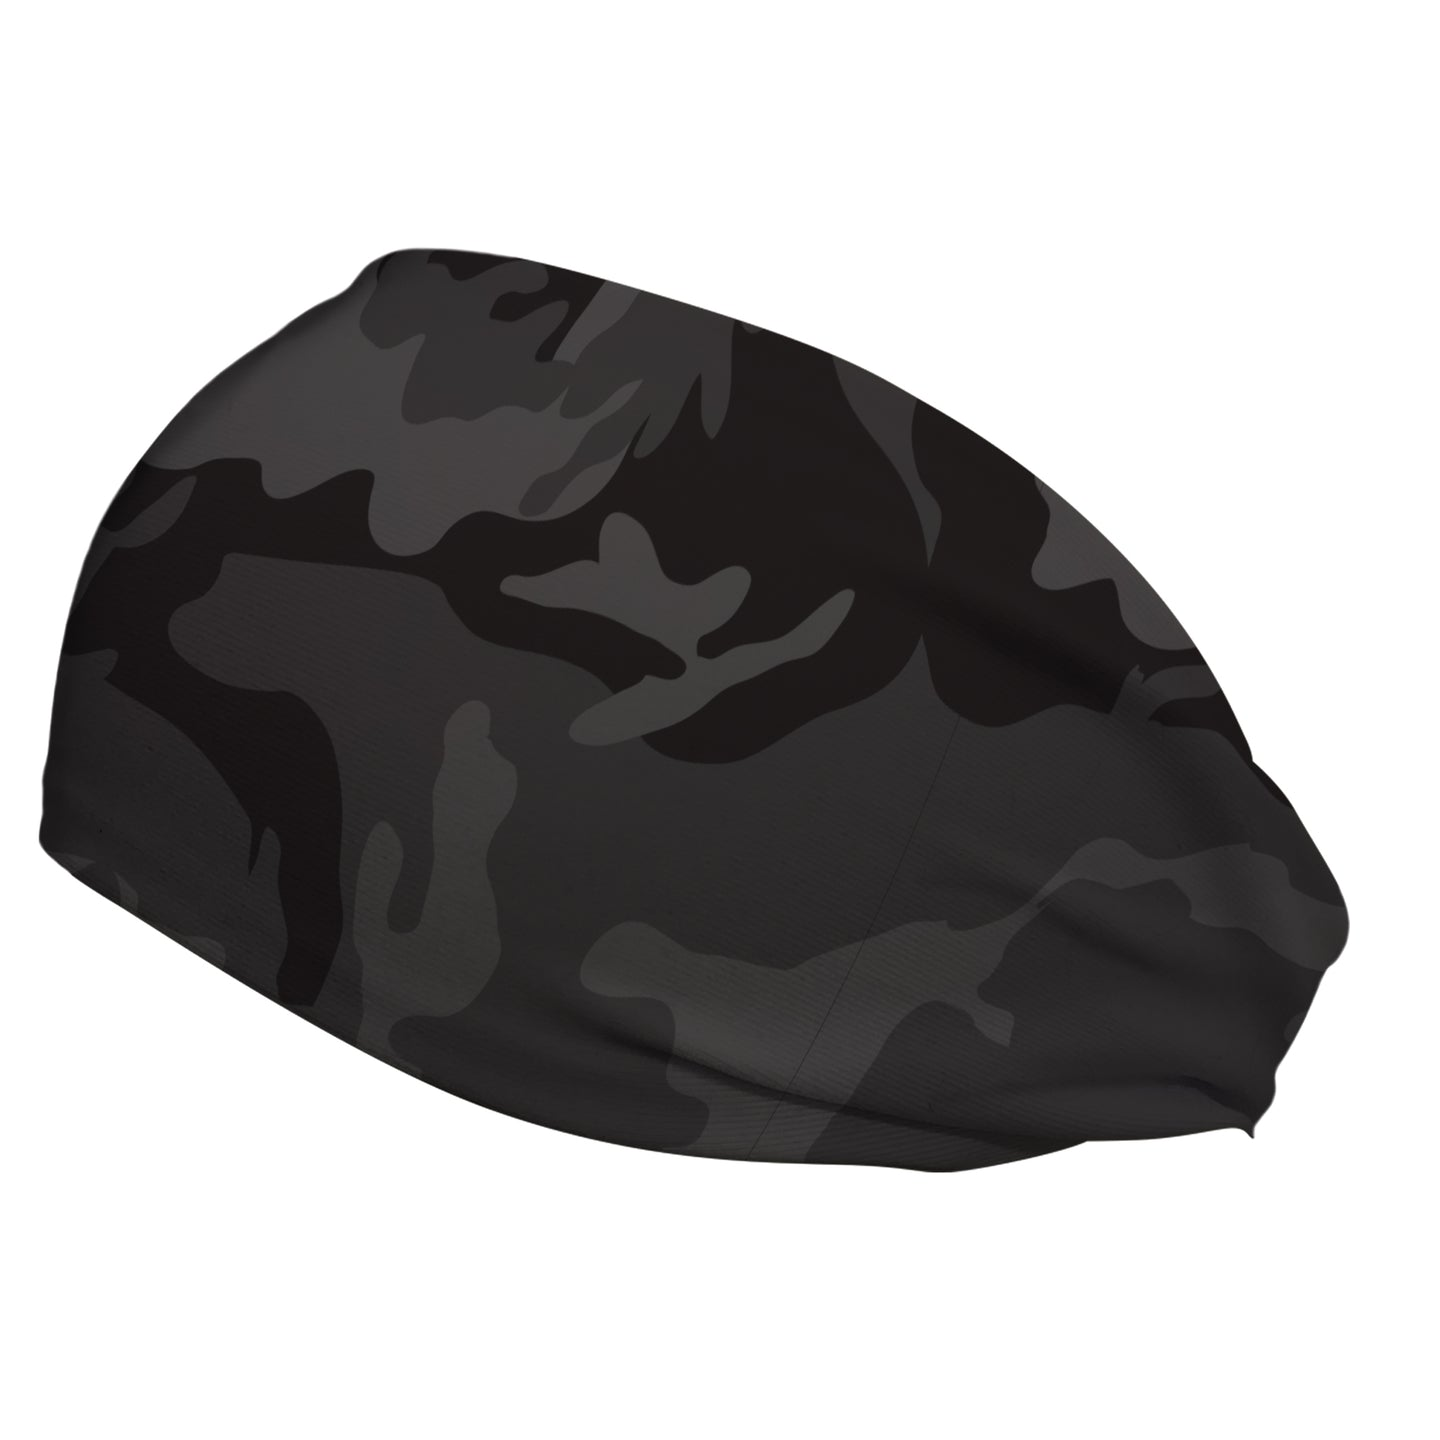 Grey Camo Hiji®Band Concussion Headband for Sports